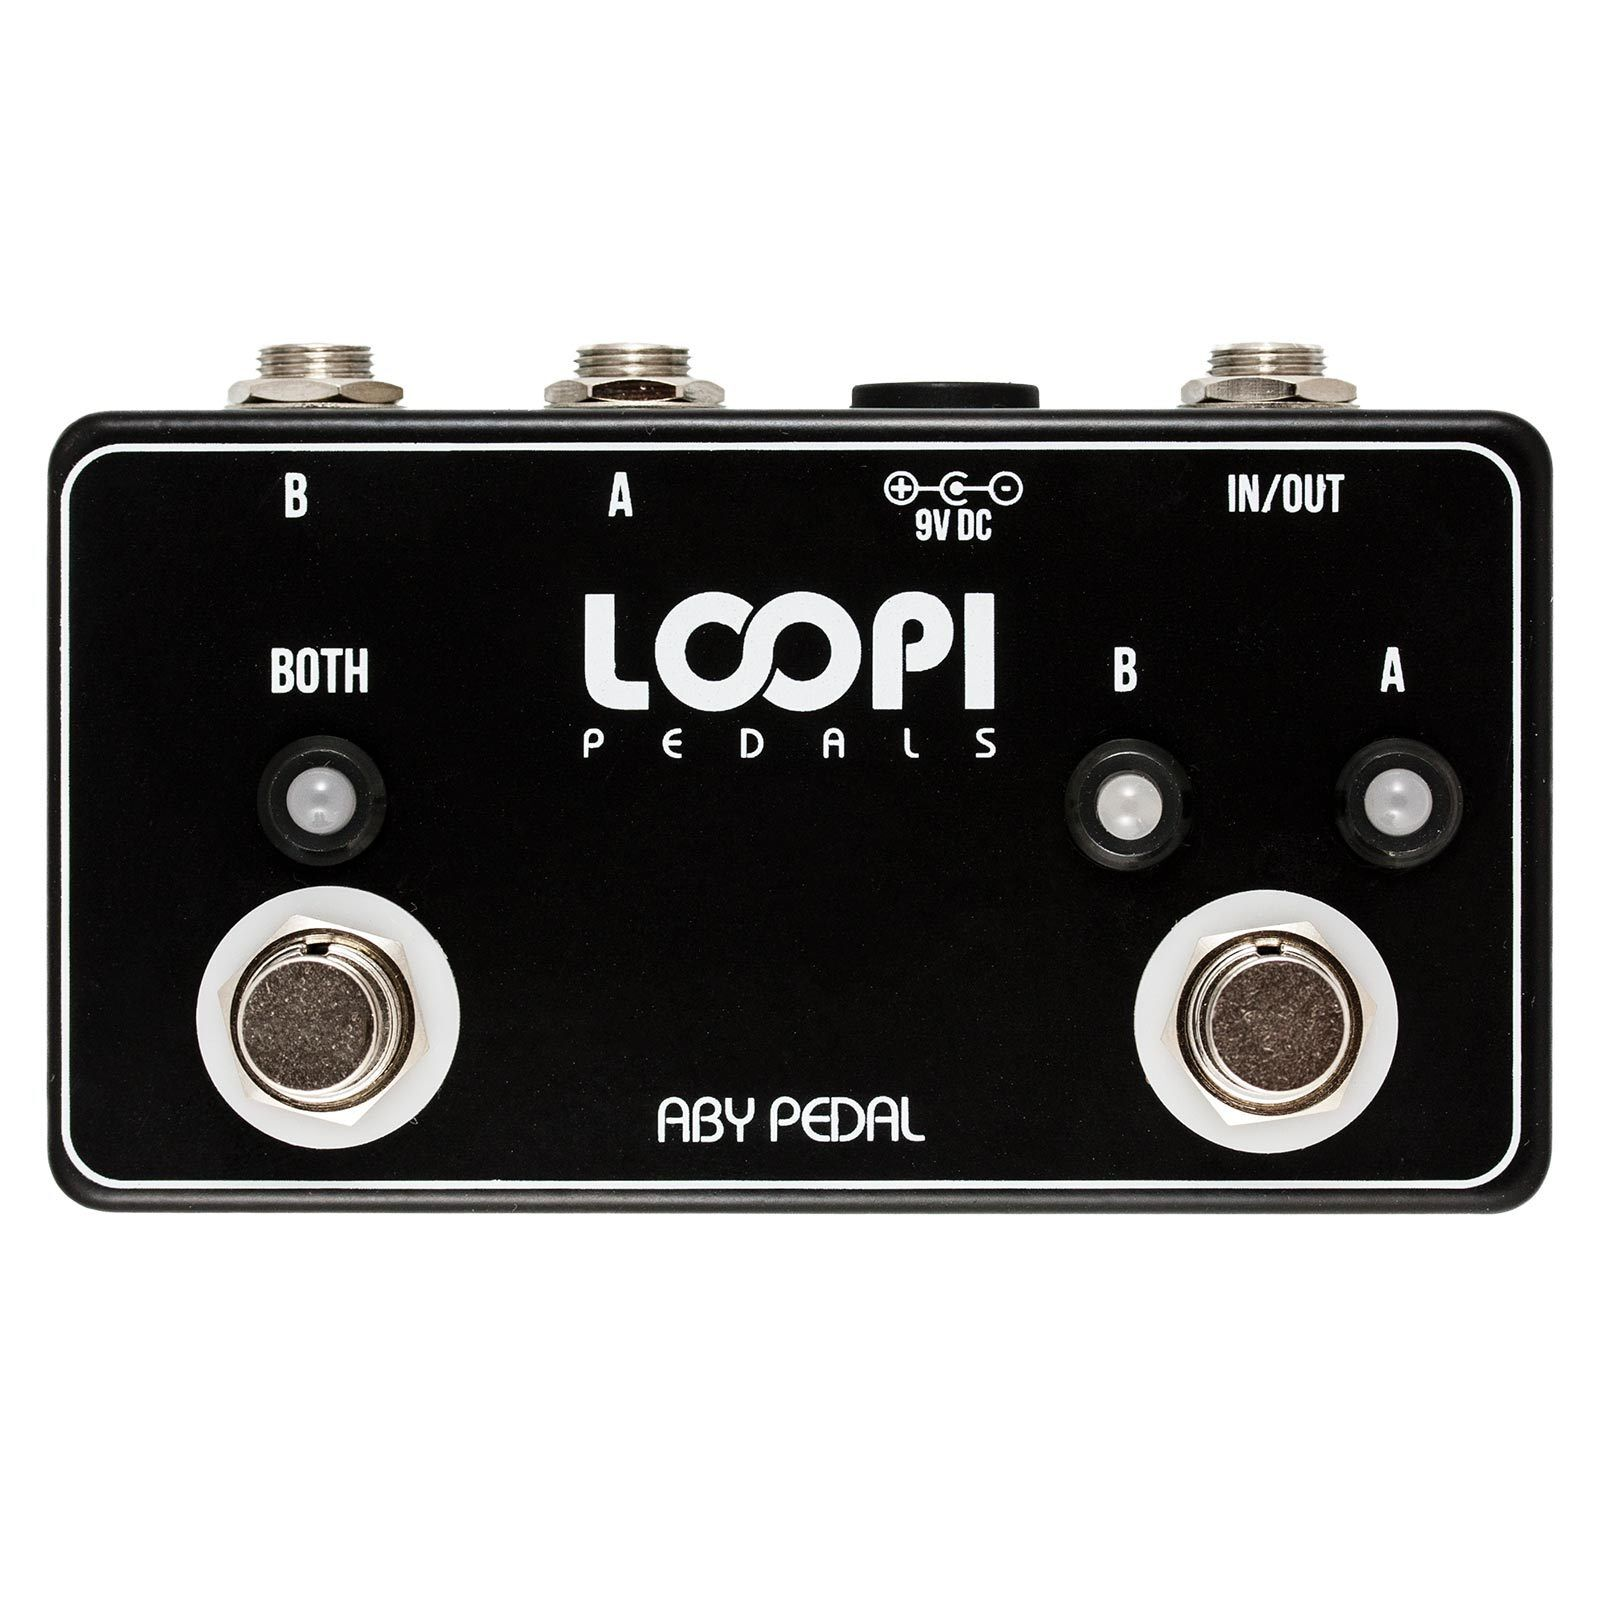 ABY Pedal Guitar Line Switcher - True Bypass - - - Loopi Pedals 34023d